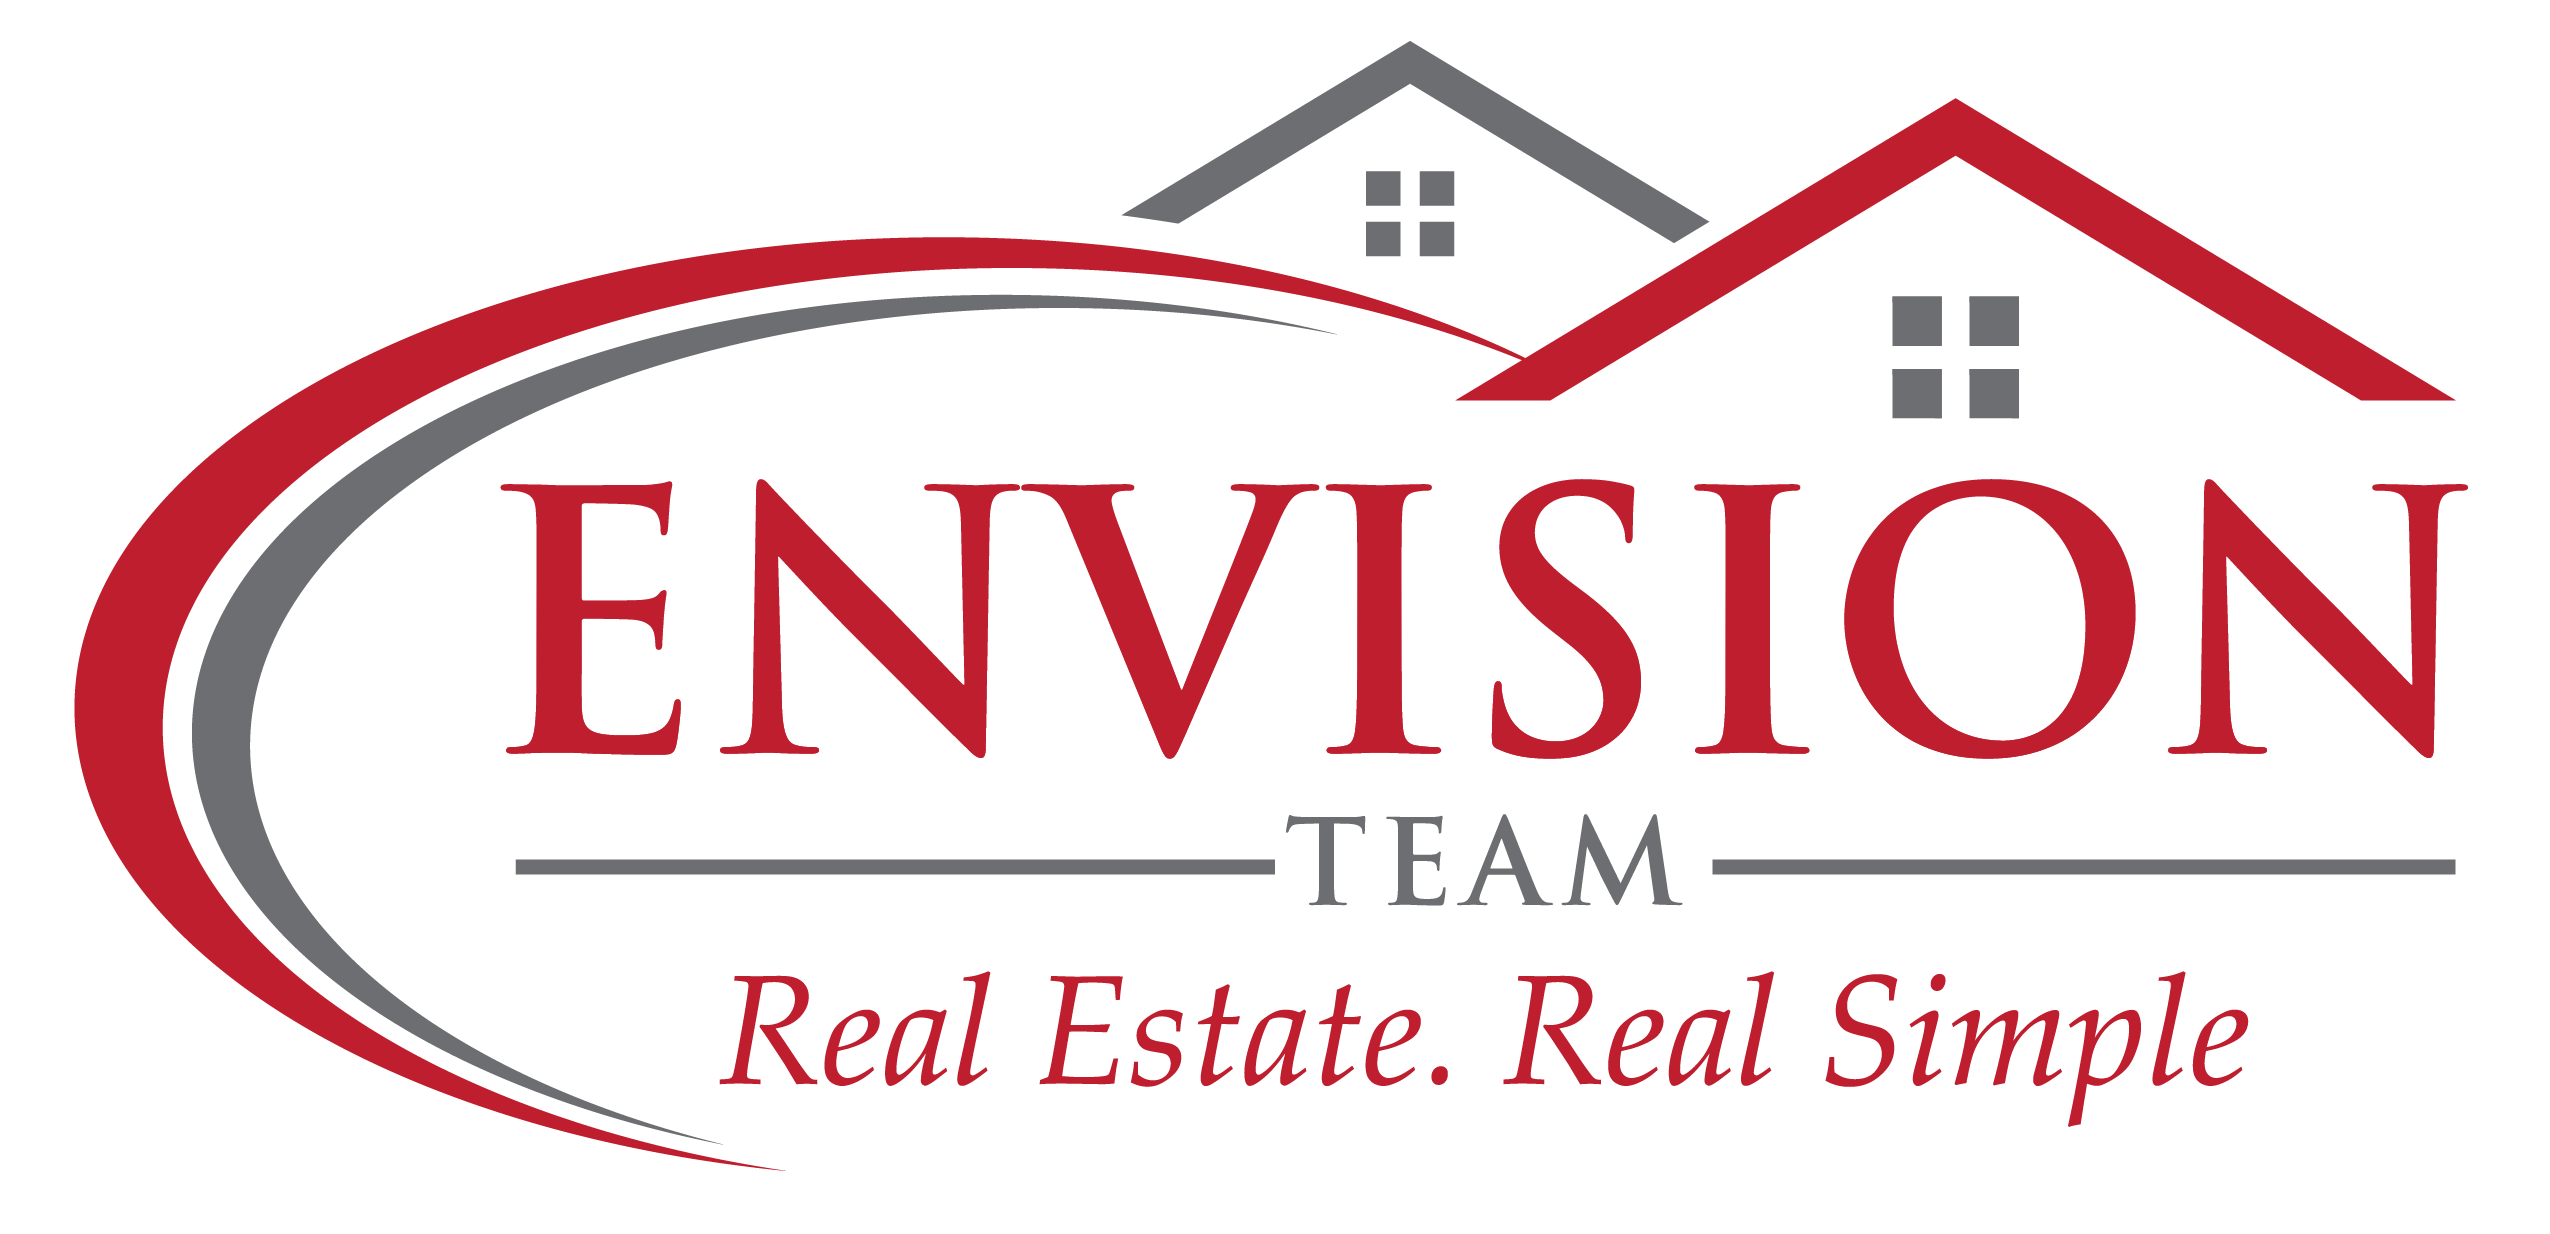 Envision Real Estate Clear Logo.png